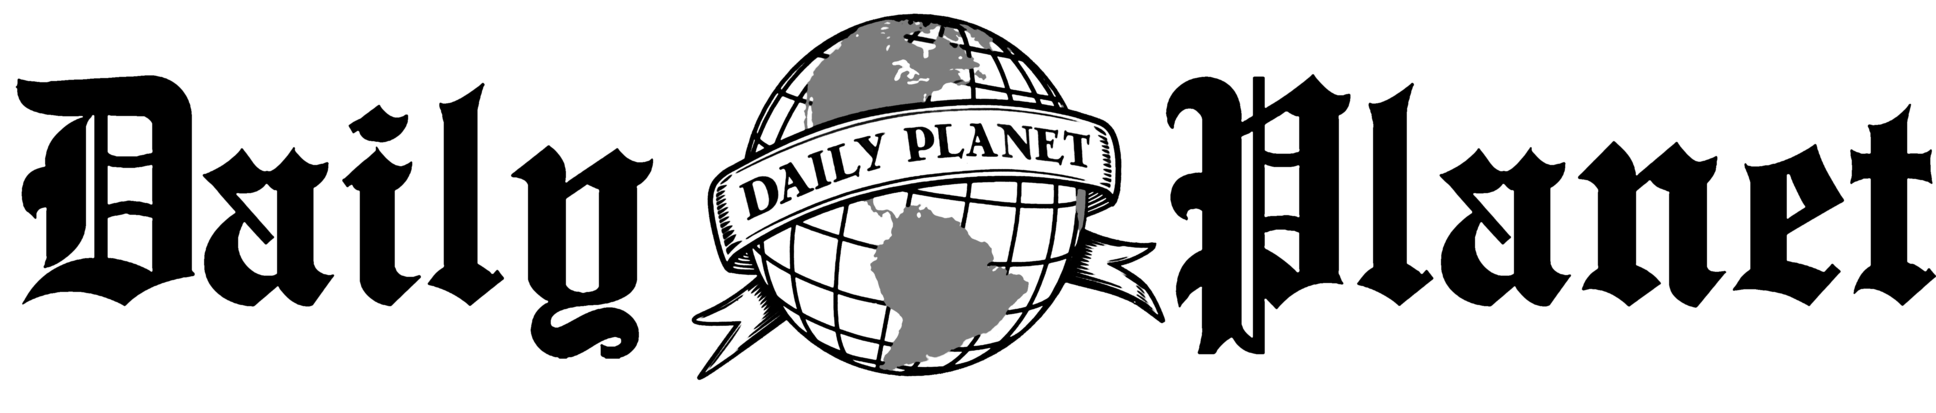 Daily Planet Logo - Daily Planet Logo 1932 Prototype by NoahLC.deviantart.com on ...